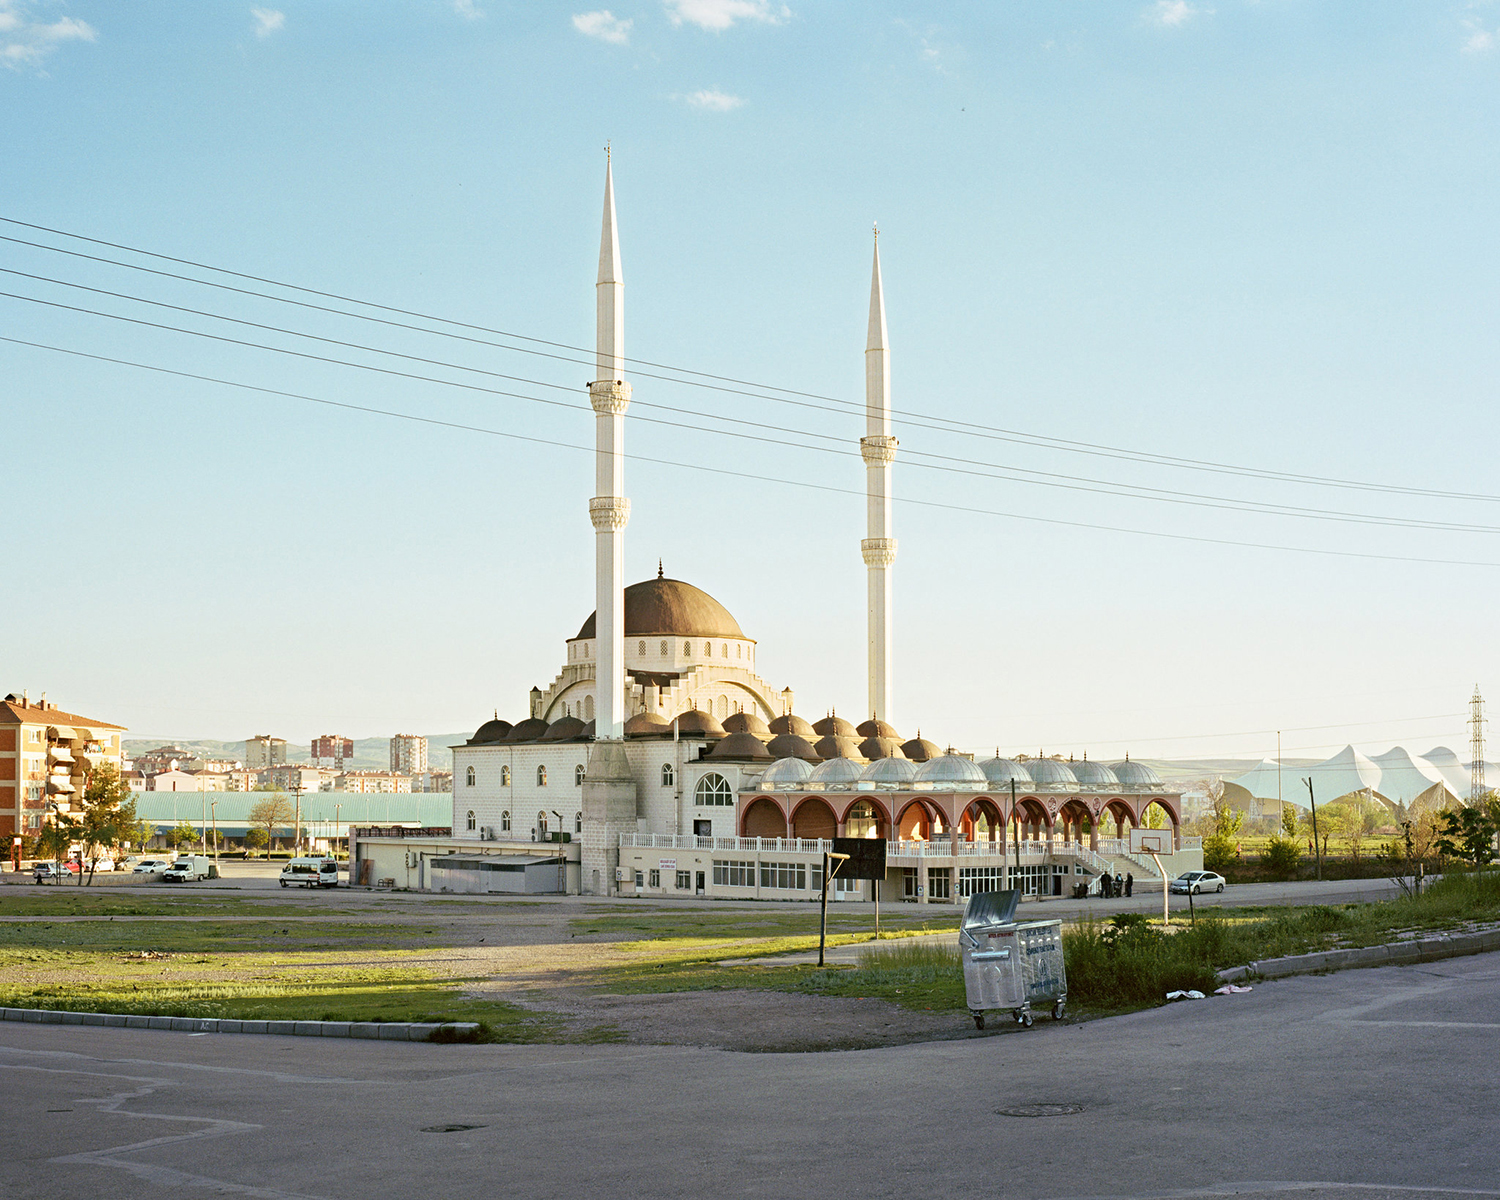 "© Norman Behrendt, from the series ""Brave New Turkey"", Abdülkadir Eylani Camii, realized 2014/15, Sincan, Ankara, 2016"